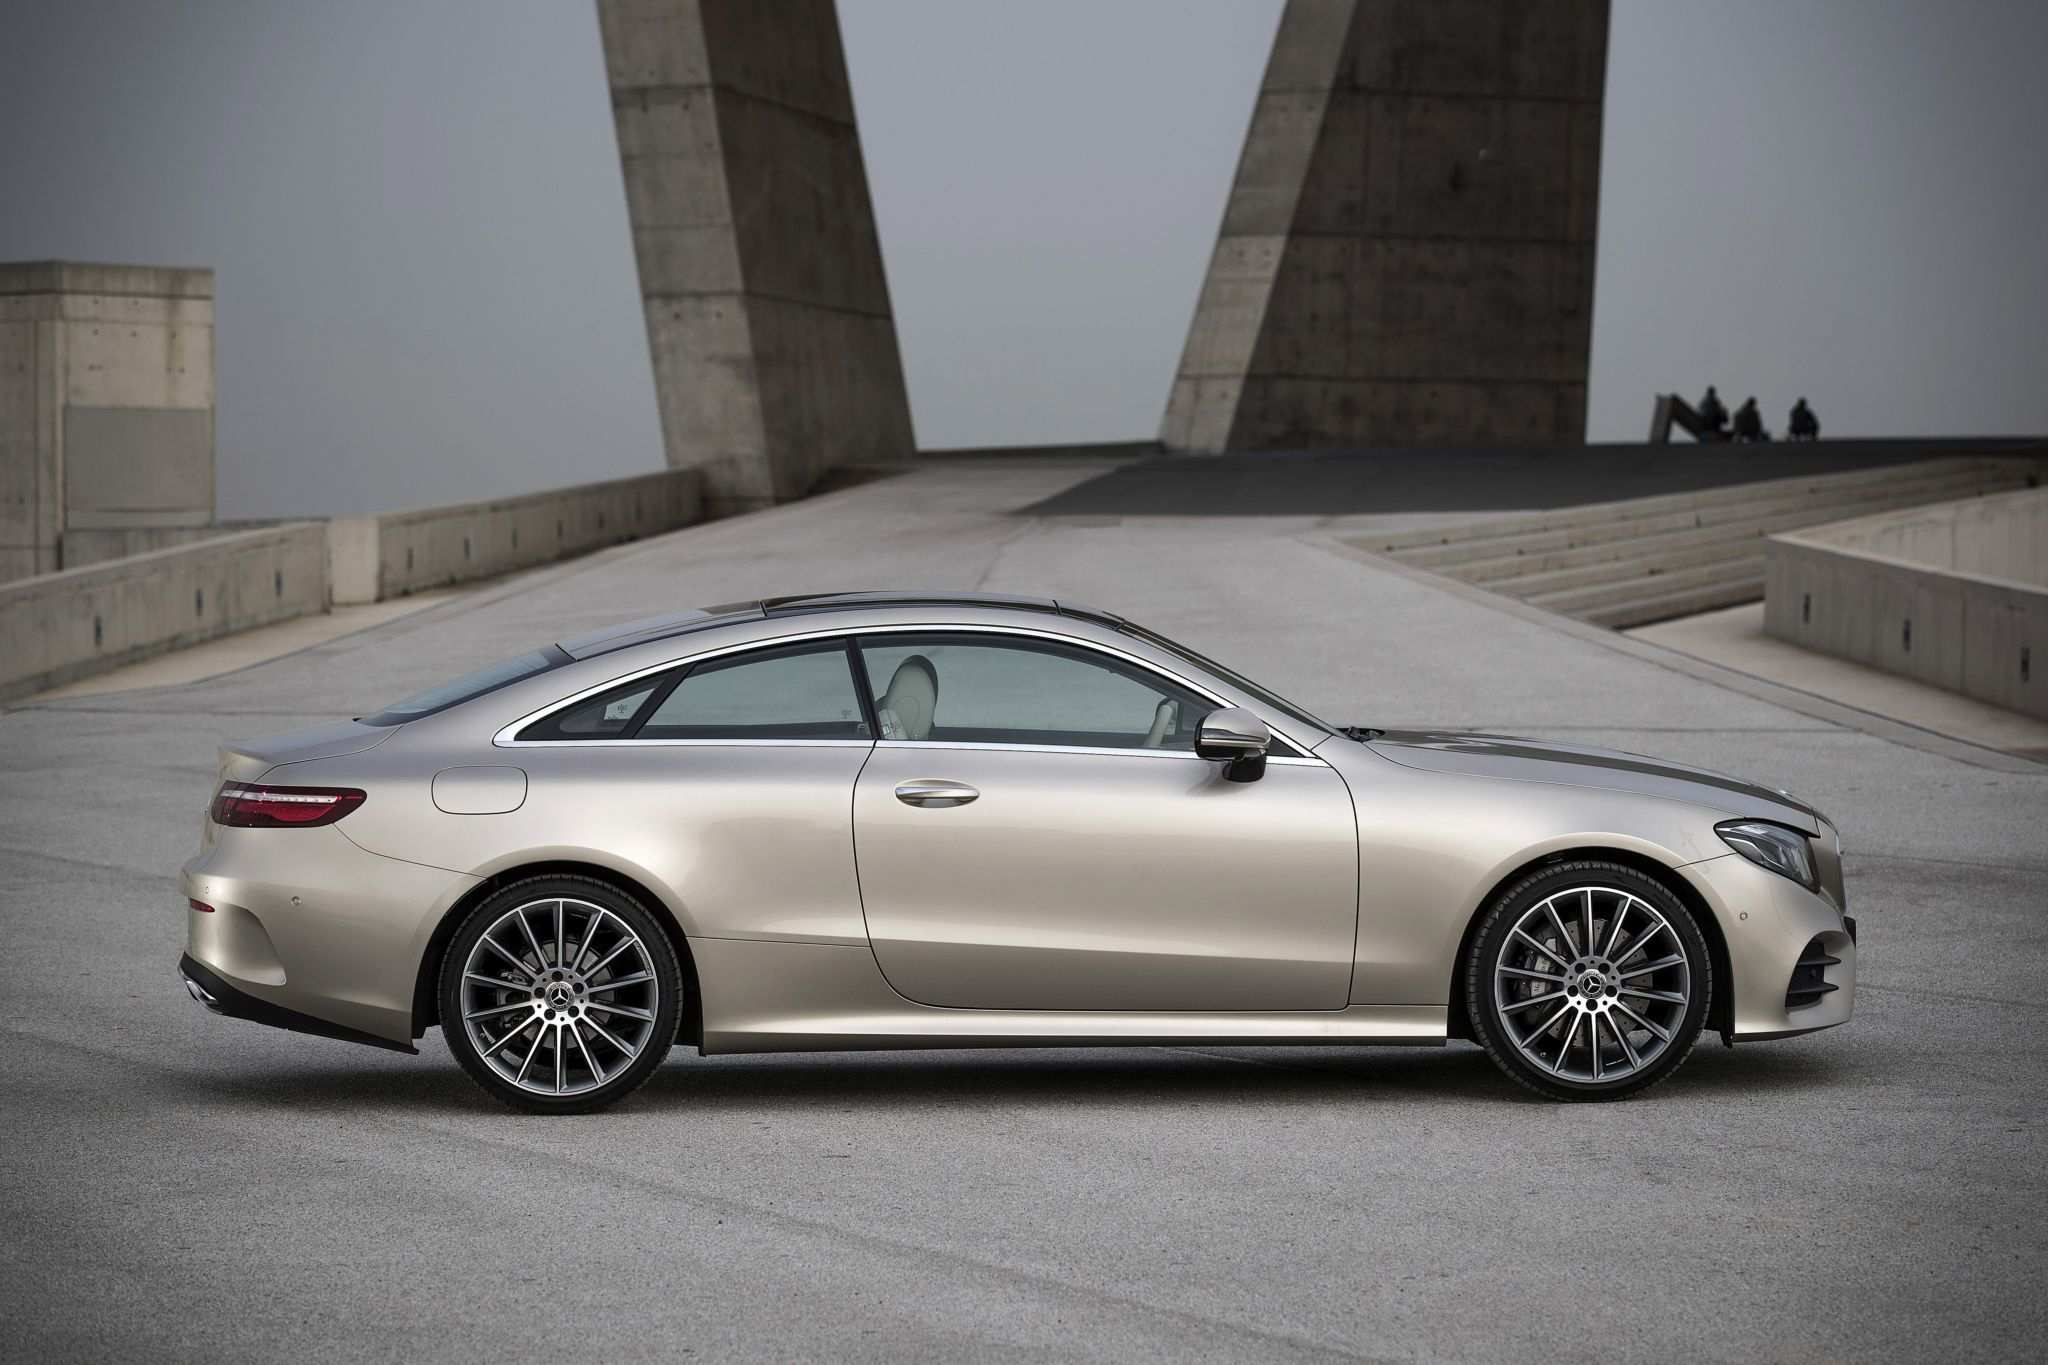 38 Best Review Mercedes E450 Coupe 2020 Release for Mercedes E450 Coupe 2020